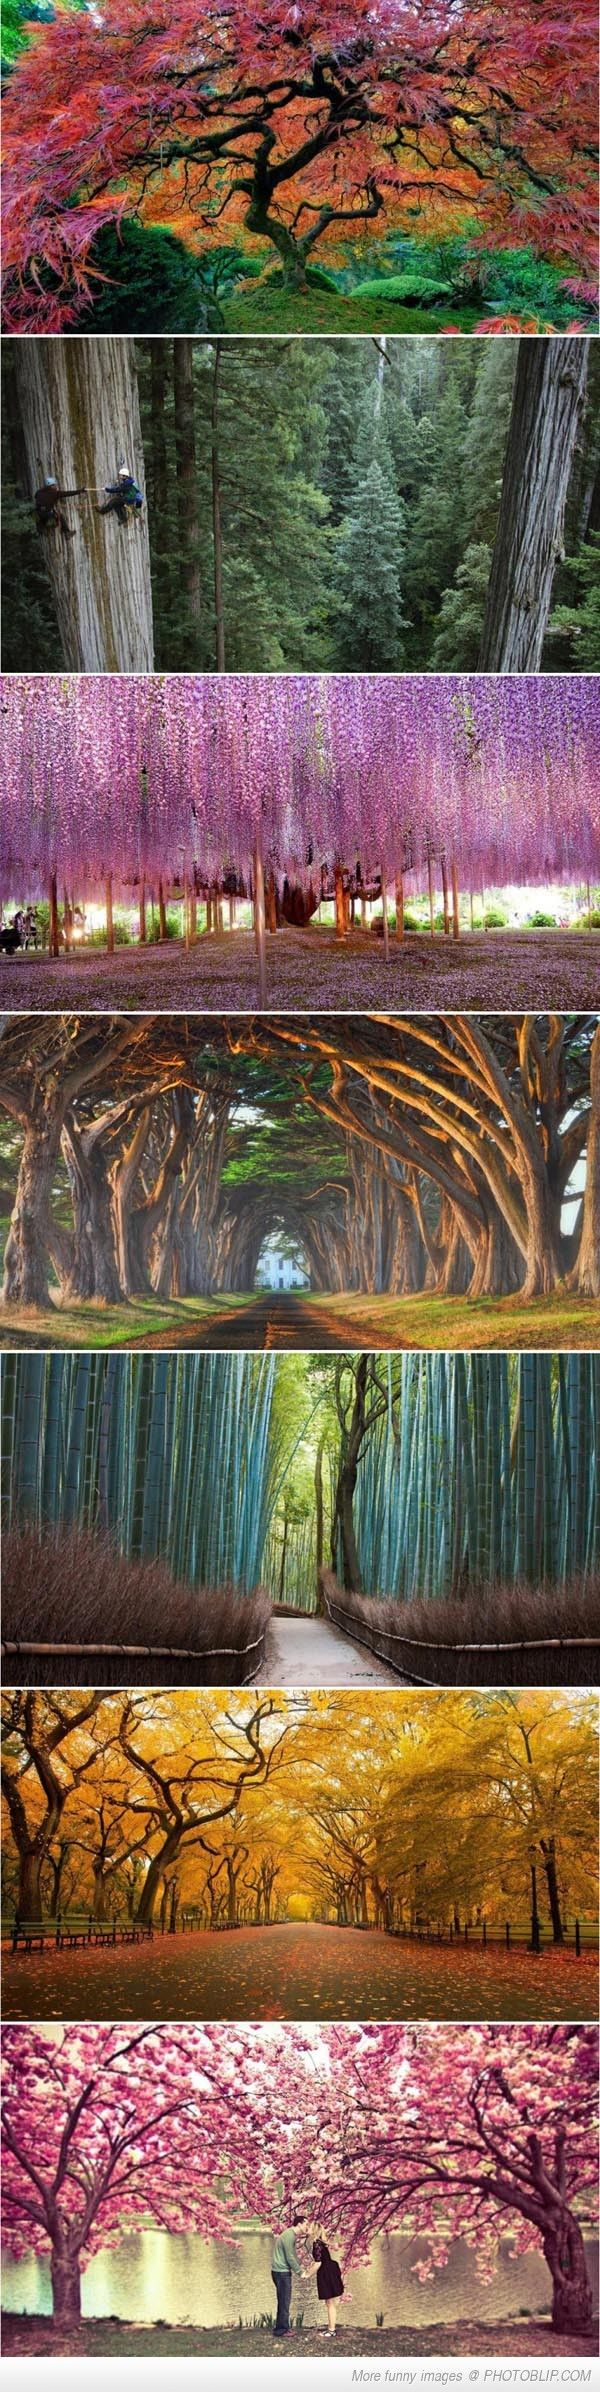 (for you, Wifey! some of the world's most beautiful trees!)